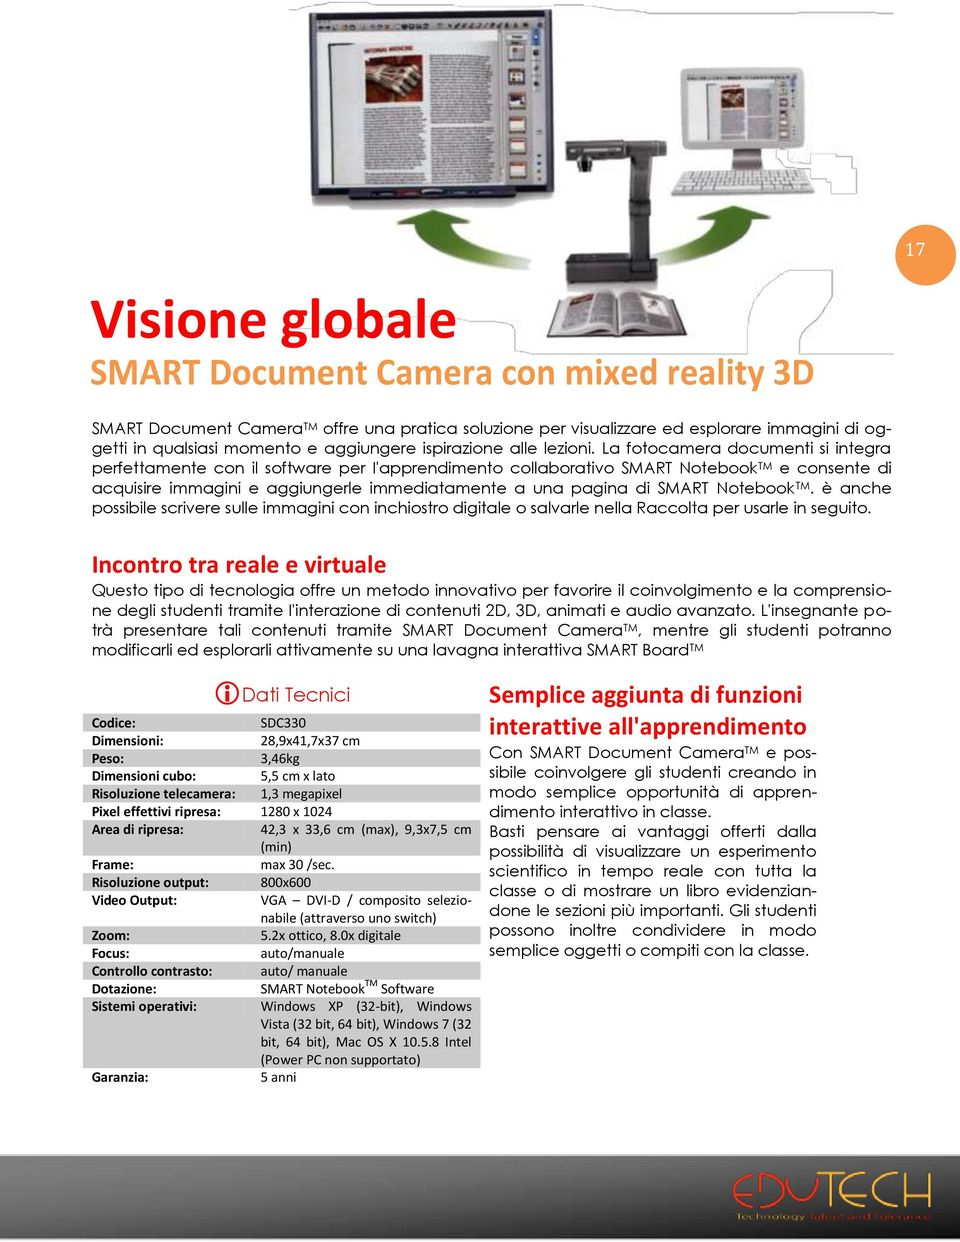 La fotocamera documenti si integra perfettamente con il software per I'apprendimento collaborativo SMART Notebook TM e consente di acquisire immagini e aggiungerle immediatamente a una pagina di